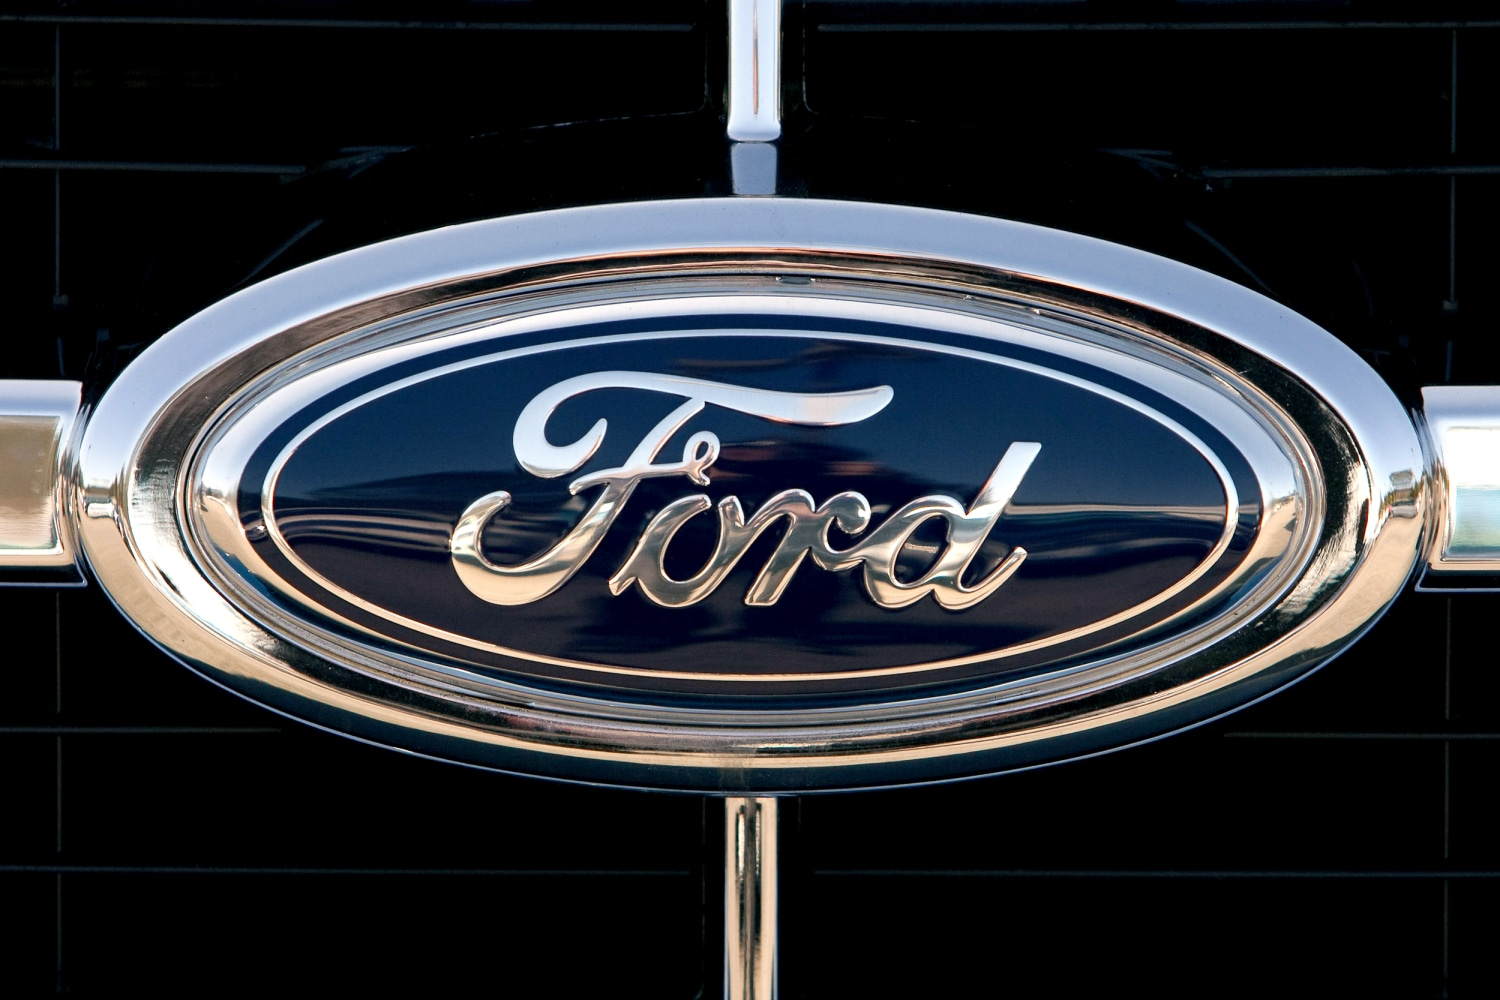 Ford Recalls Cars Over Fuel Pumps Dangerous Windows NBC News - Ford